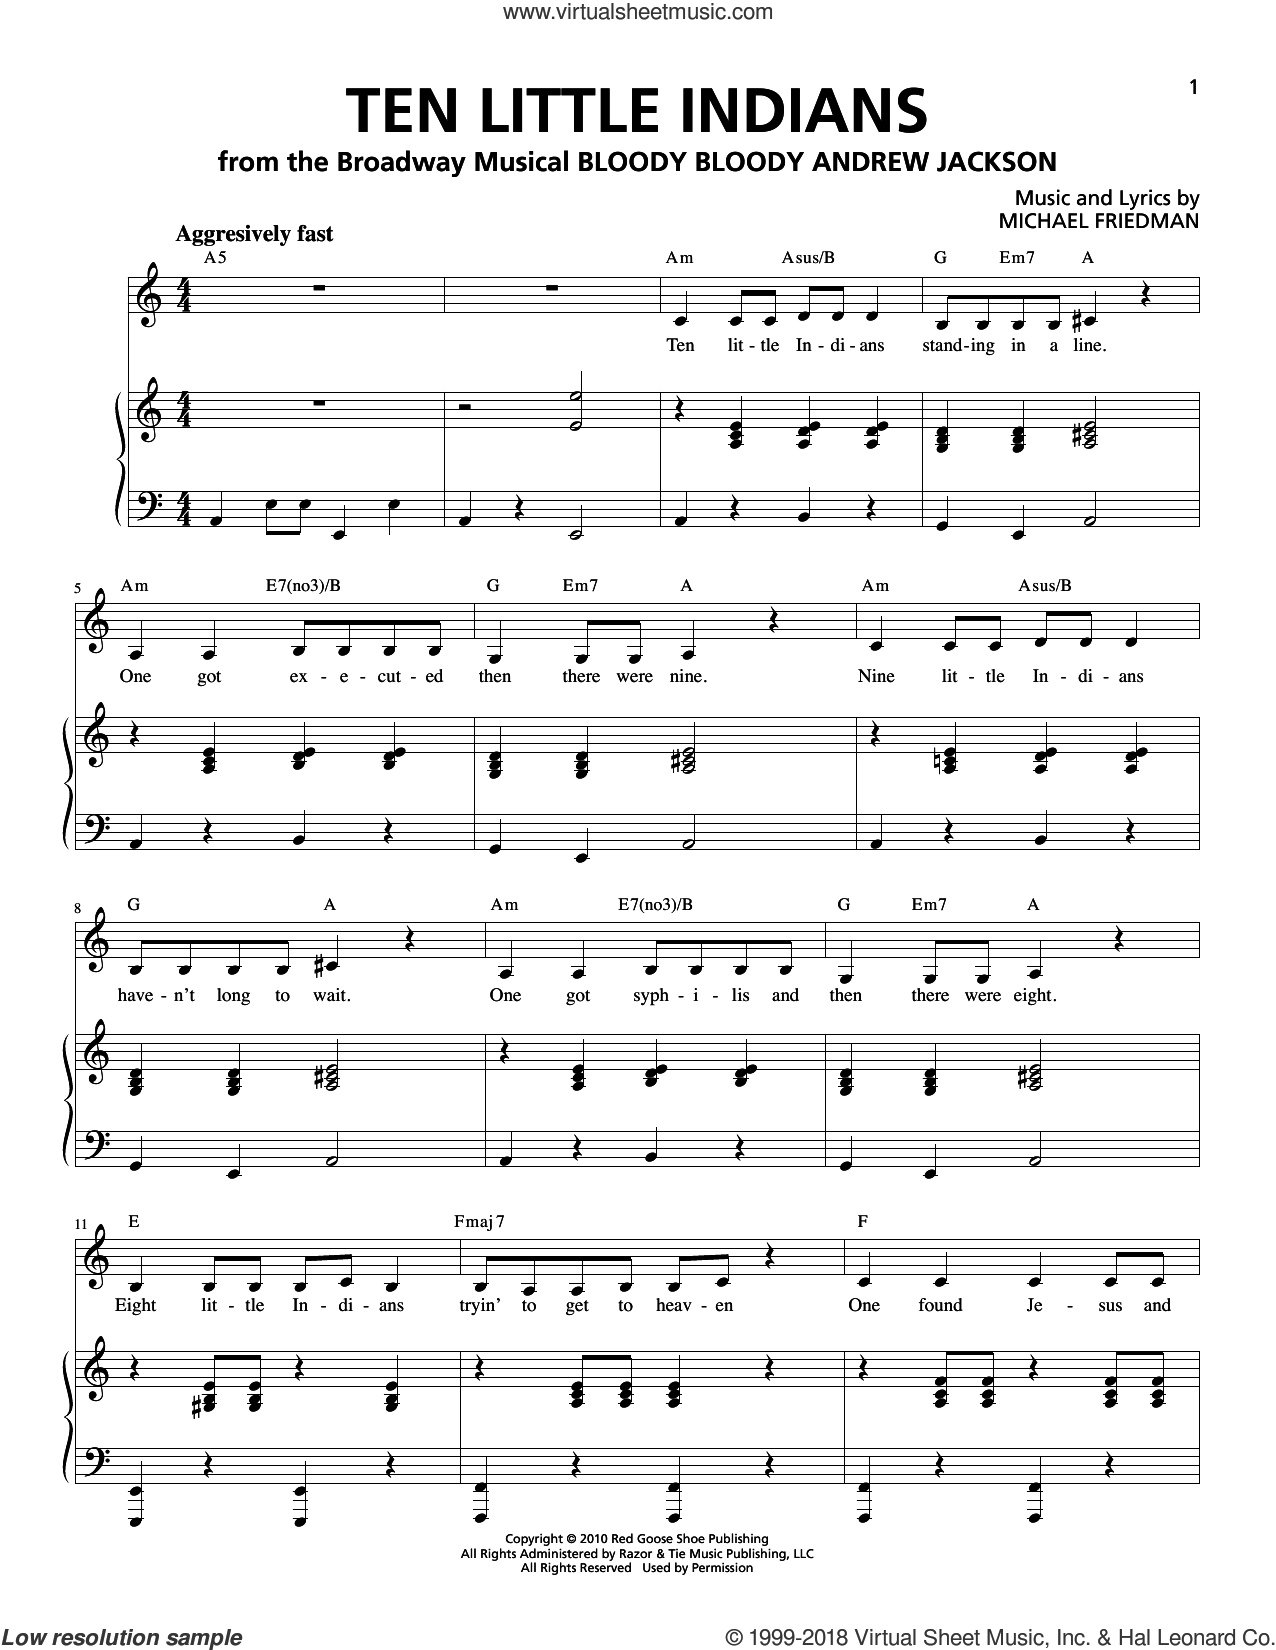 Ten Little Indians sheet music for voice and piano by Michael Friedman. Score Image Preview.